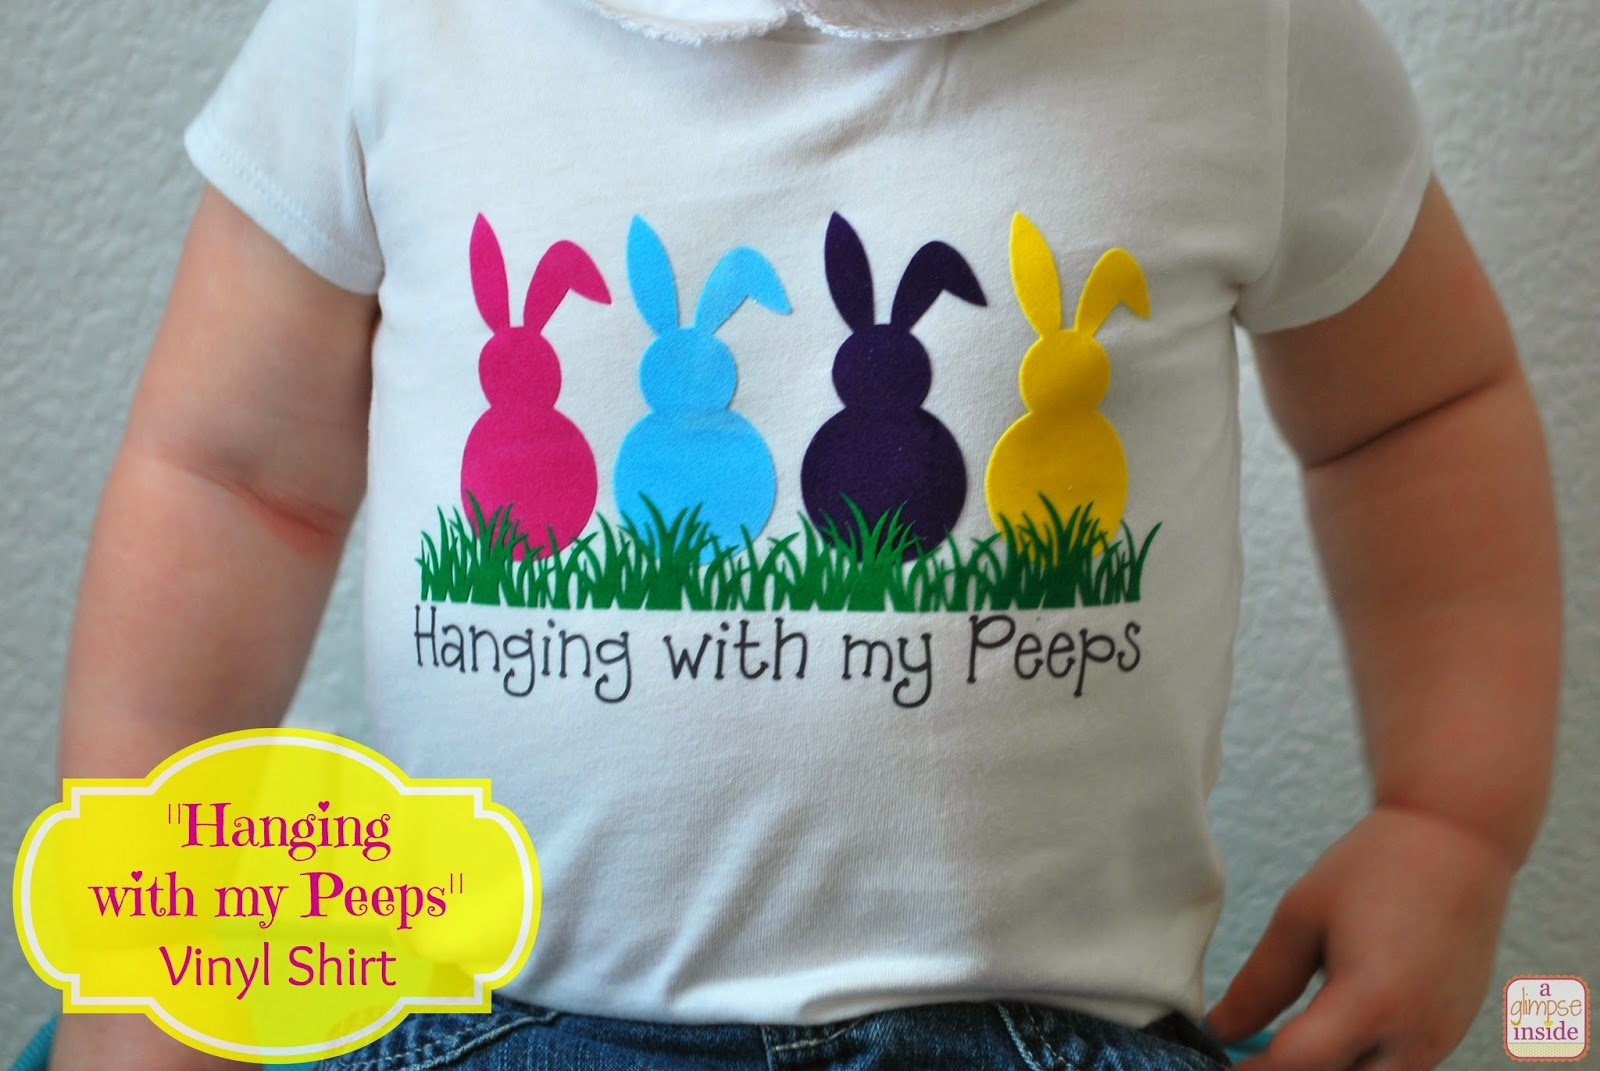 http://www.aglimpseinsideblog.com/2014/03/hanging-with-my-peeps-vinyl-shirt.html